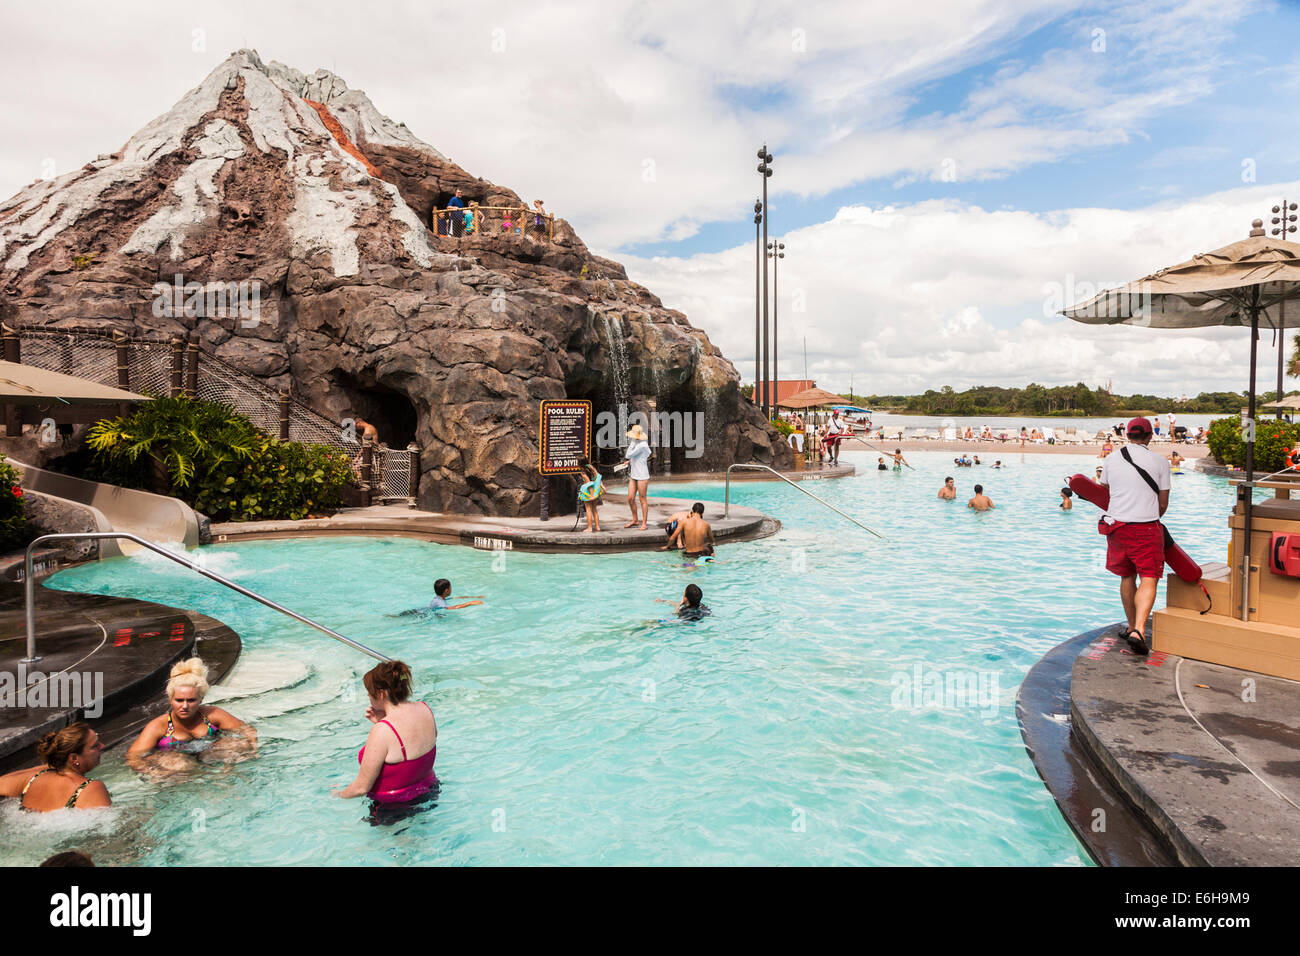 Guests enjoying the swimming pool at the Polynesian Resort in Walt Disney World, Florida - Stock Image